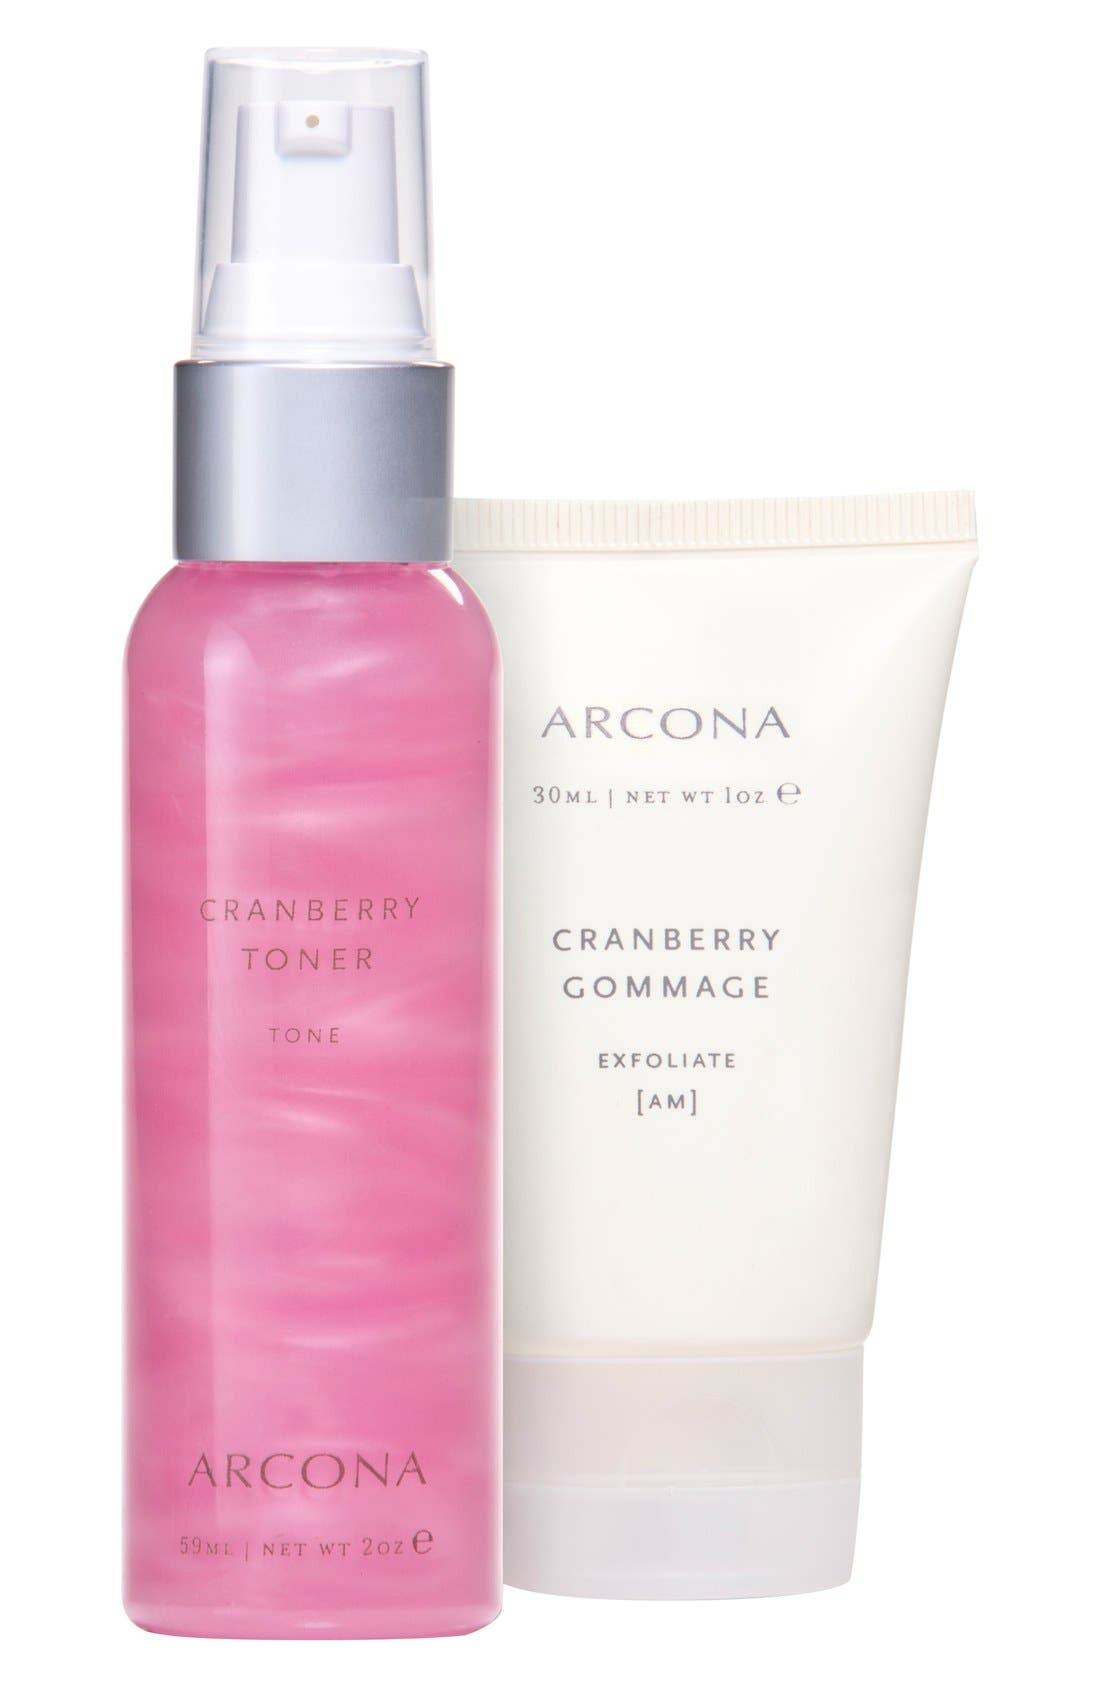 ARCONA 'Polished Perfection' Duo